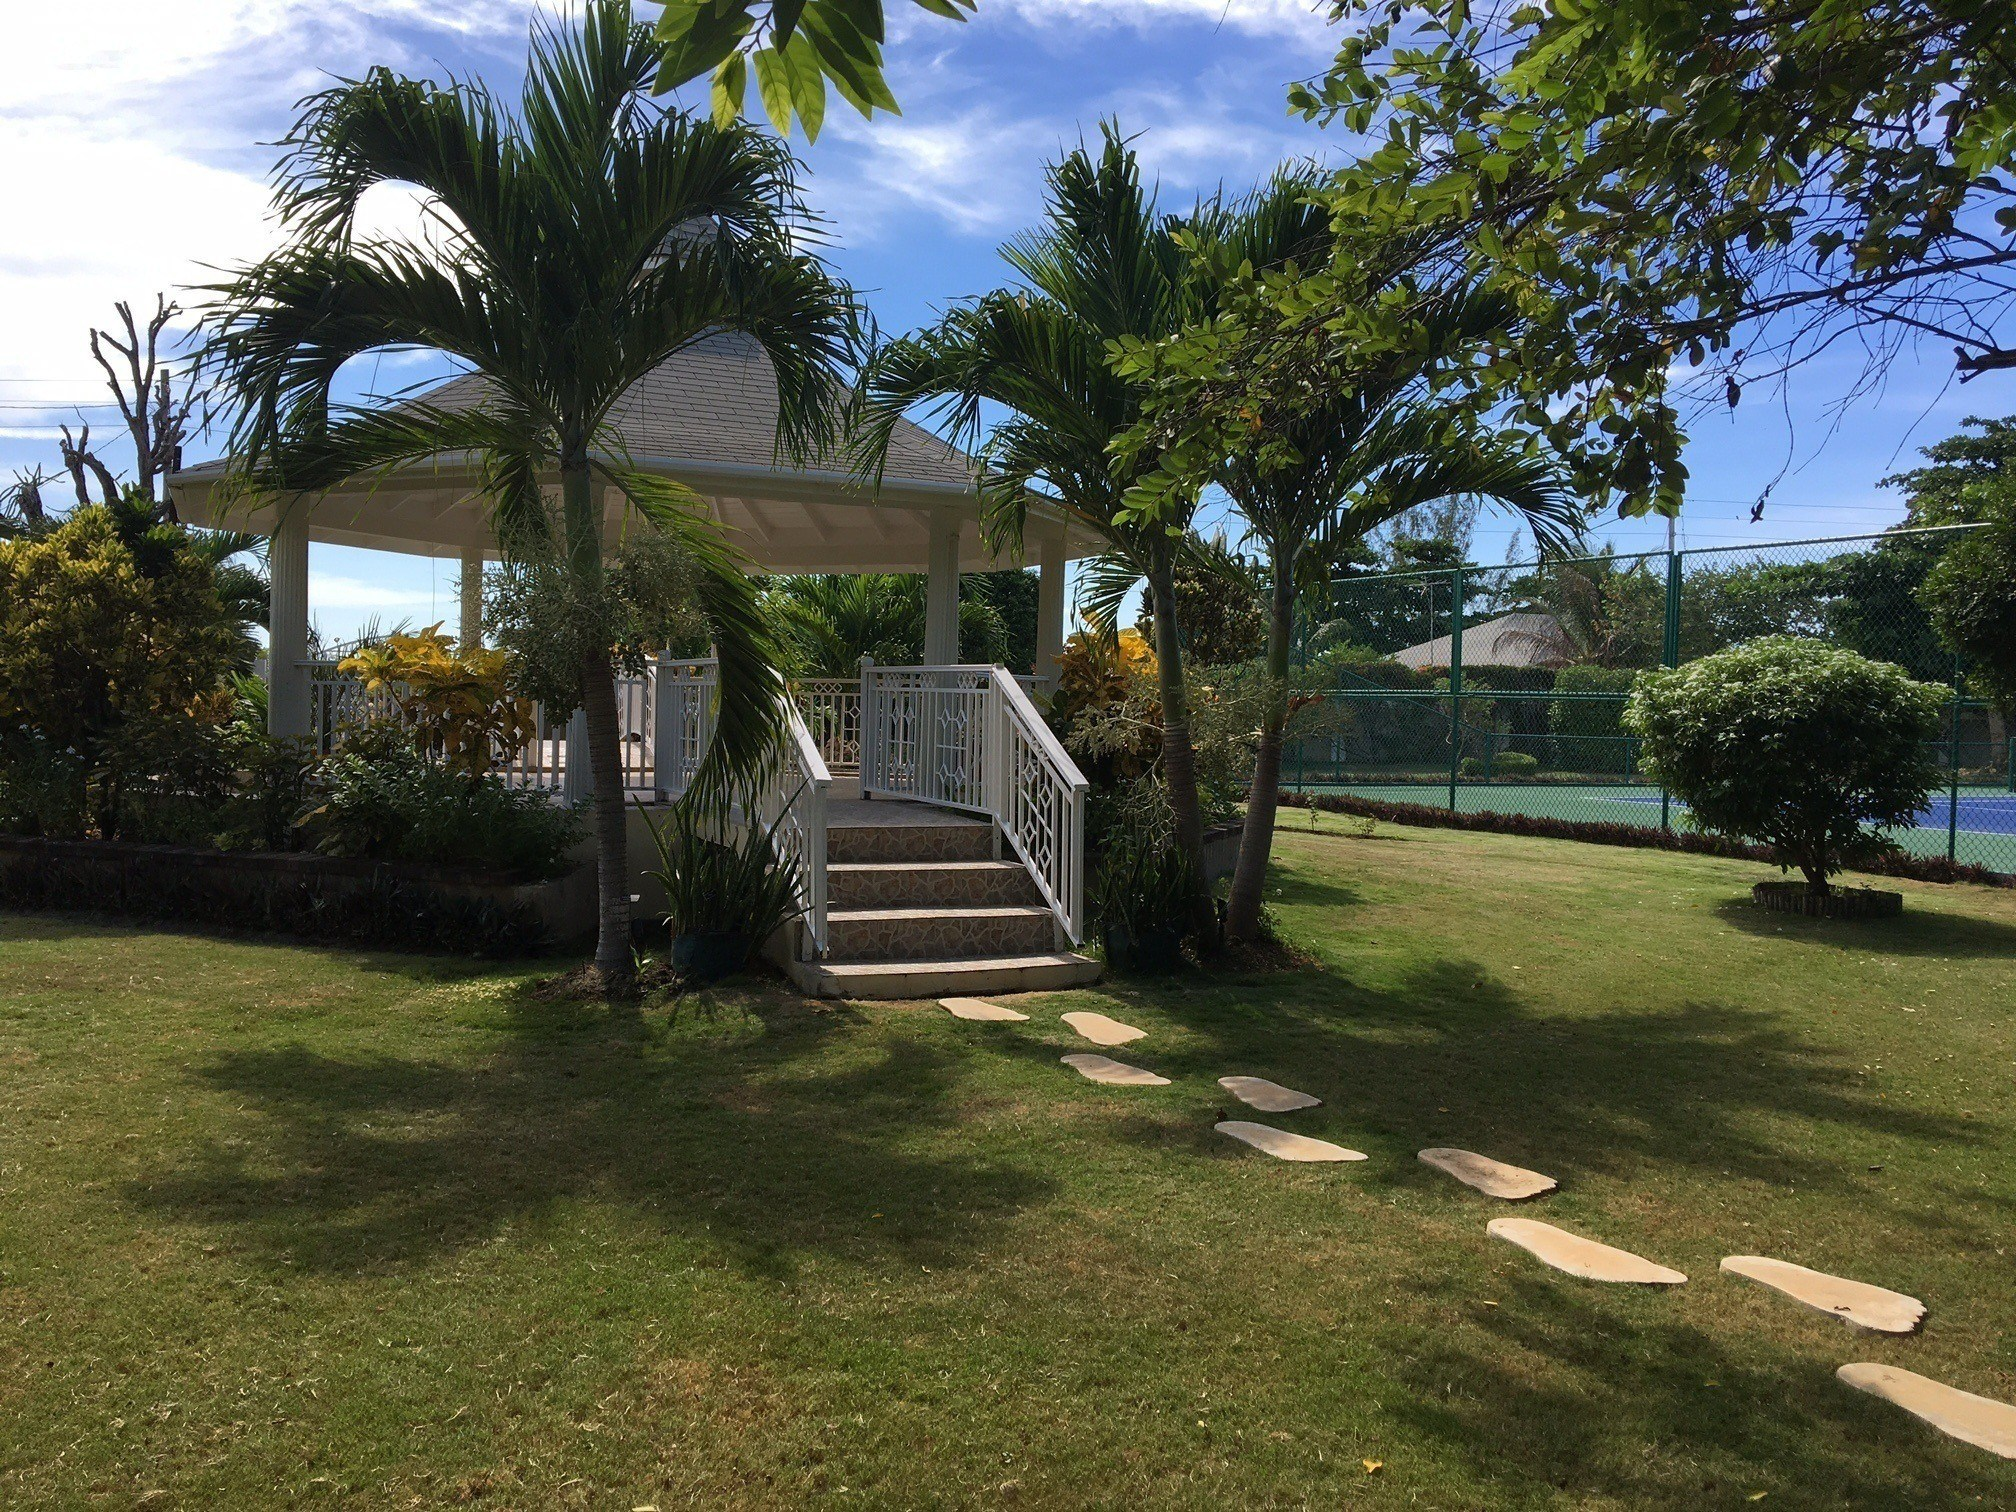 Jamaica wedding venues: The garden gazebo at Mais Oui Tennis & Spa Villa in Discovery Bay Jamaica